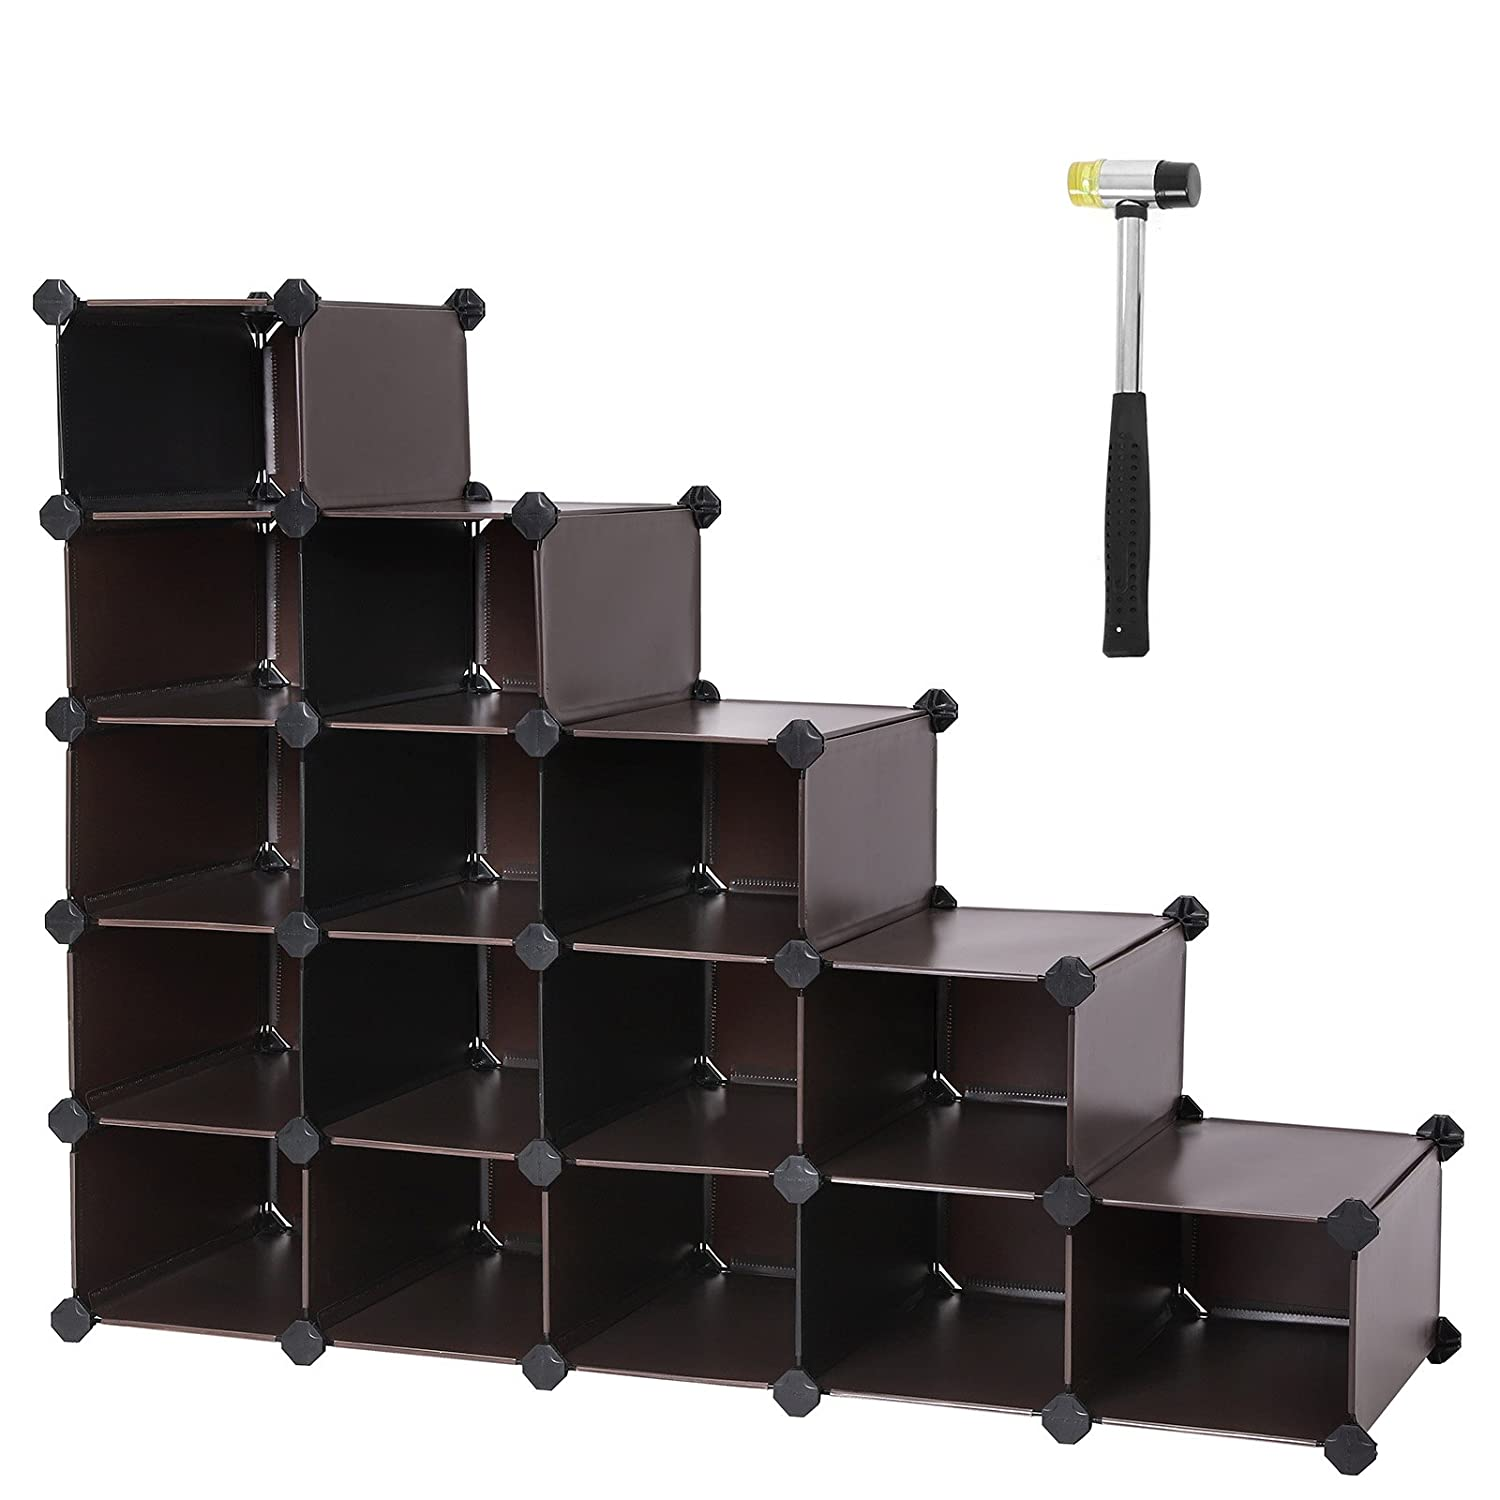 SONGMICS Shoe Rack,16-Cube Modular Cube Storage,Space Saving DIY Plastic Shoe Storage Organizer Units, Closet Cabinet, Ideal for Entryway Hallway Bathroom Living Room and Corridor Brown ULPC44Z